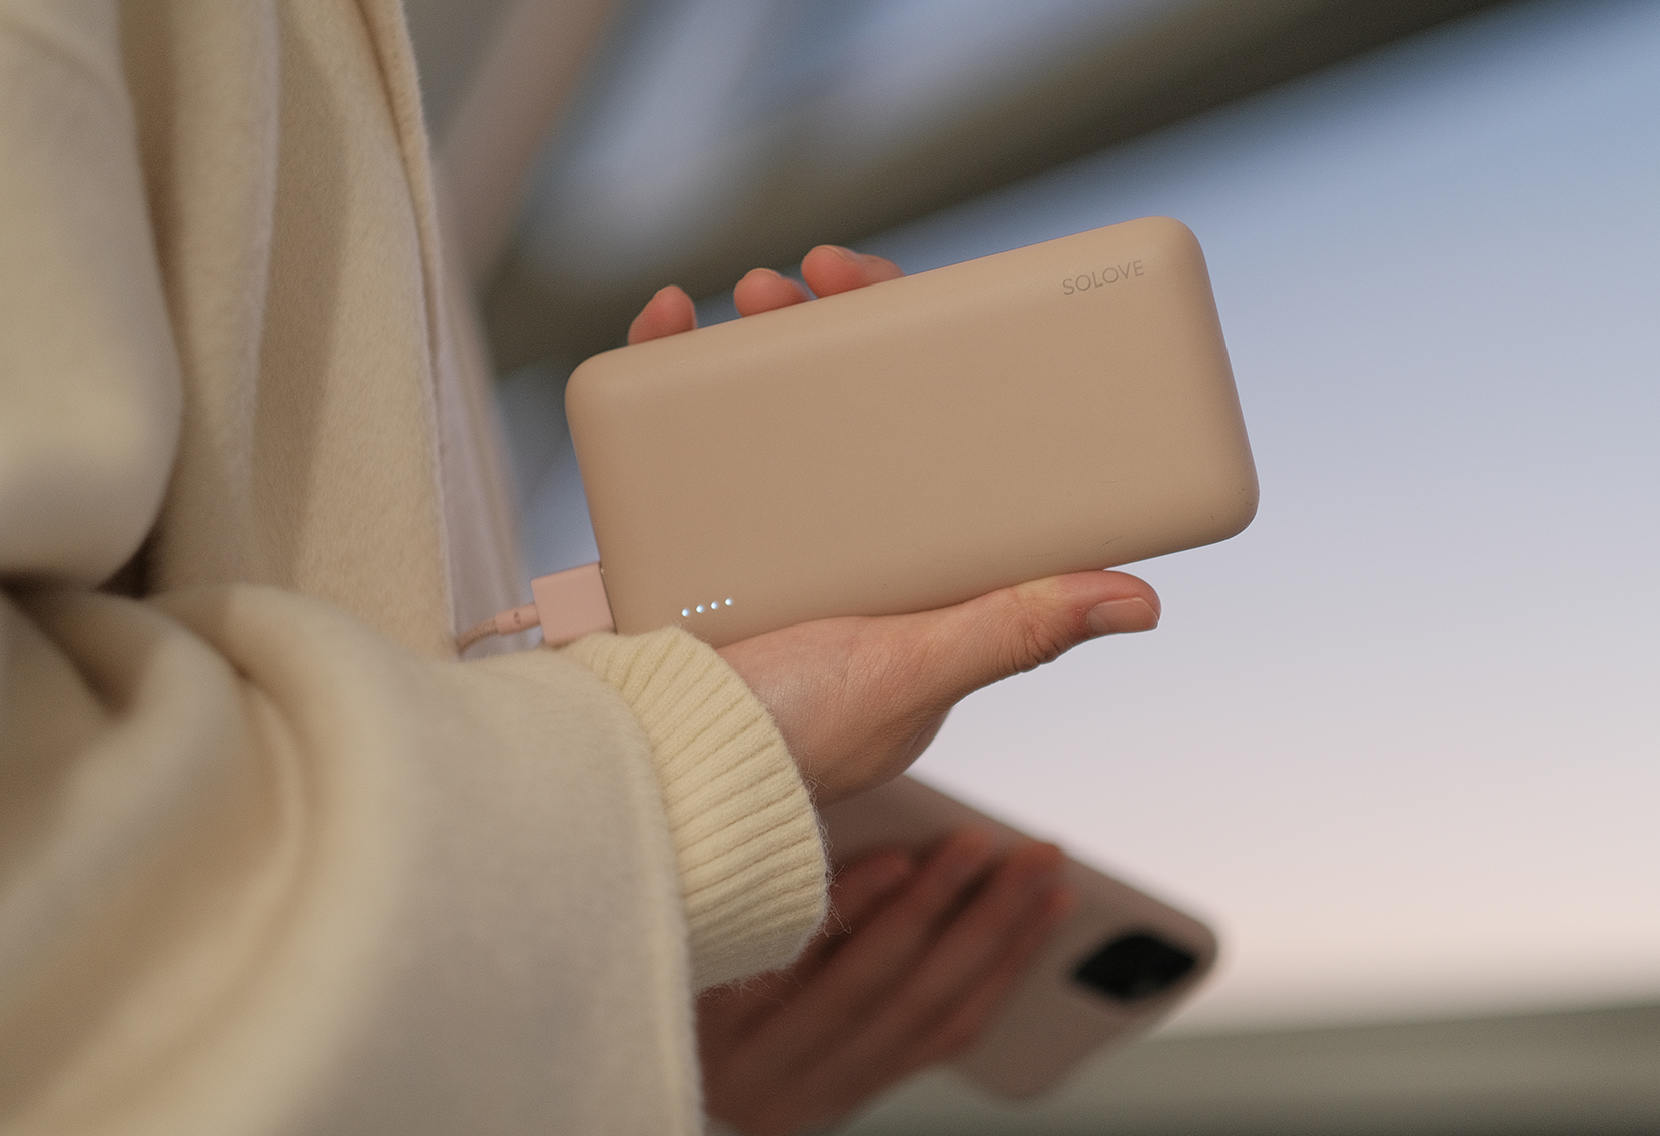 003M-Power Bank images